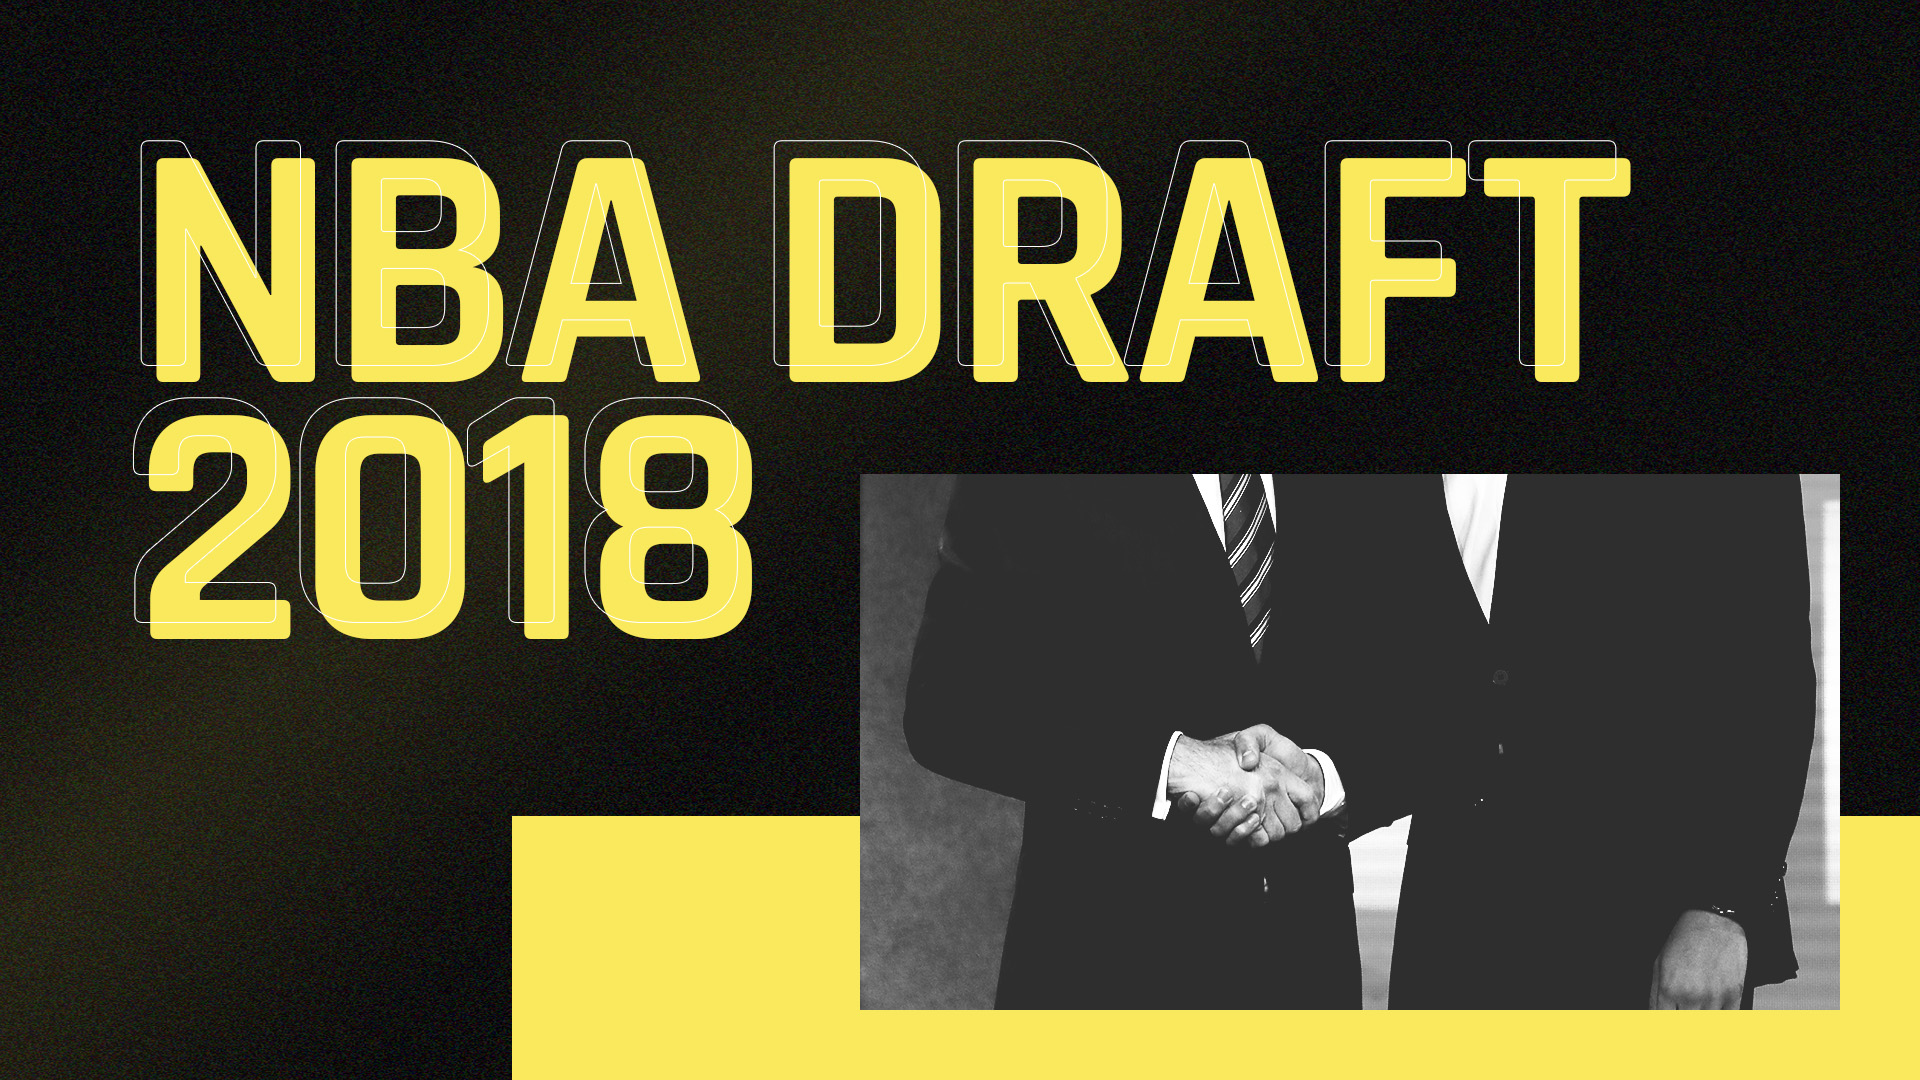 NBA Draft 2018: Who Are The Biggest Winners And Losers?